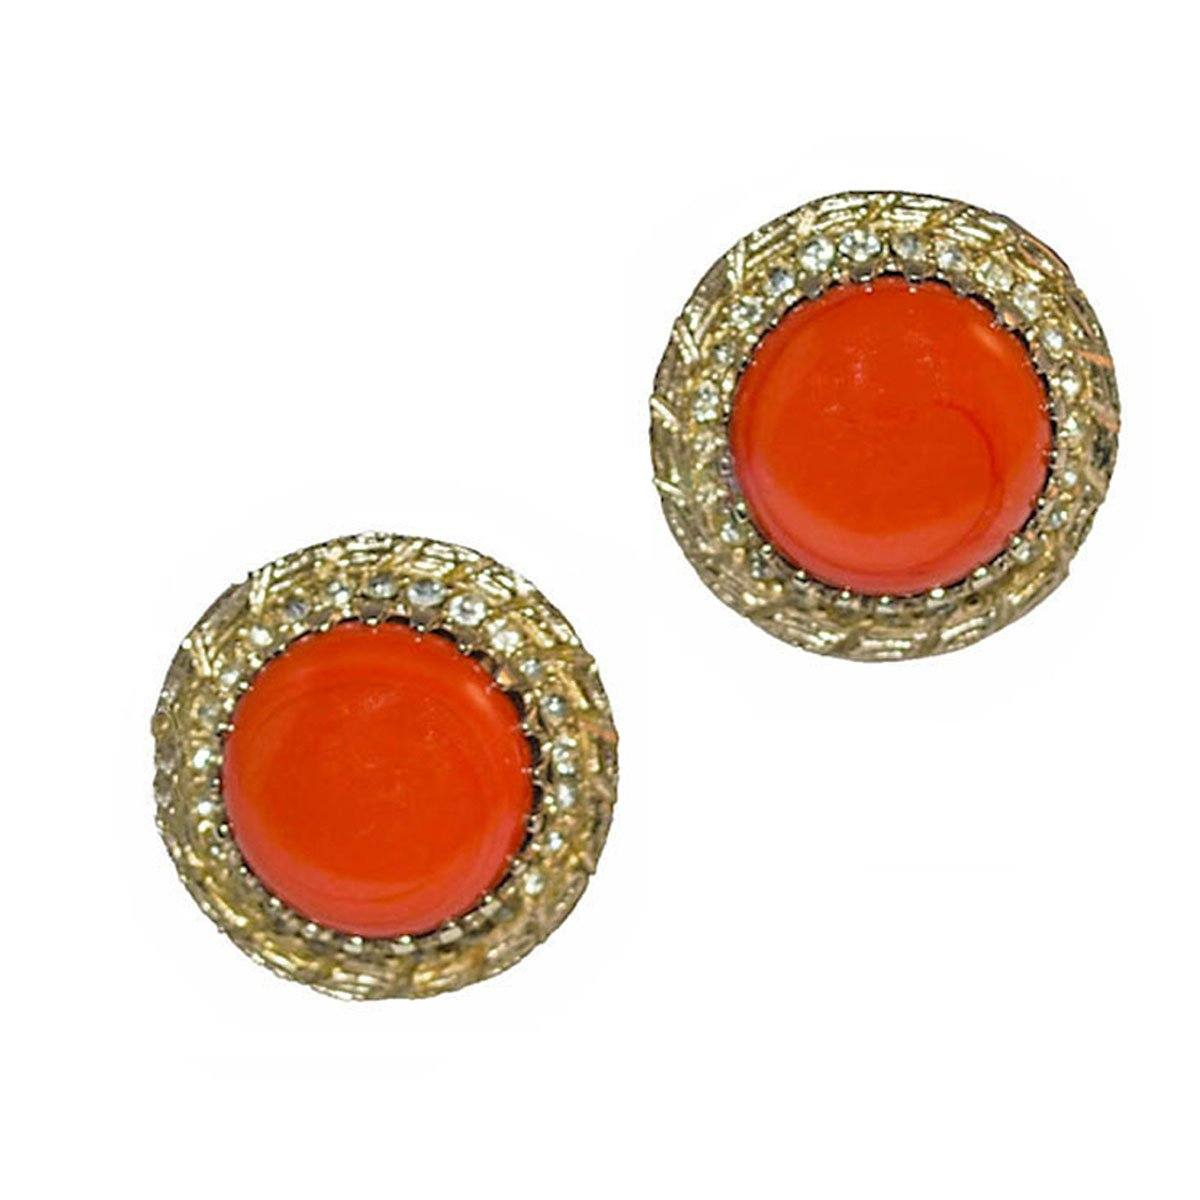 1950s Rhinestone & Orange Cabochon Button Earrings by Bergere